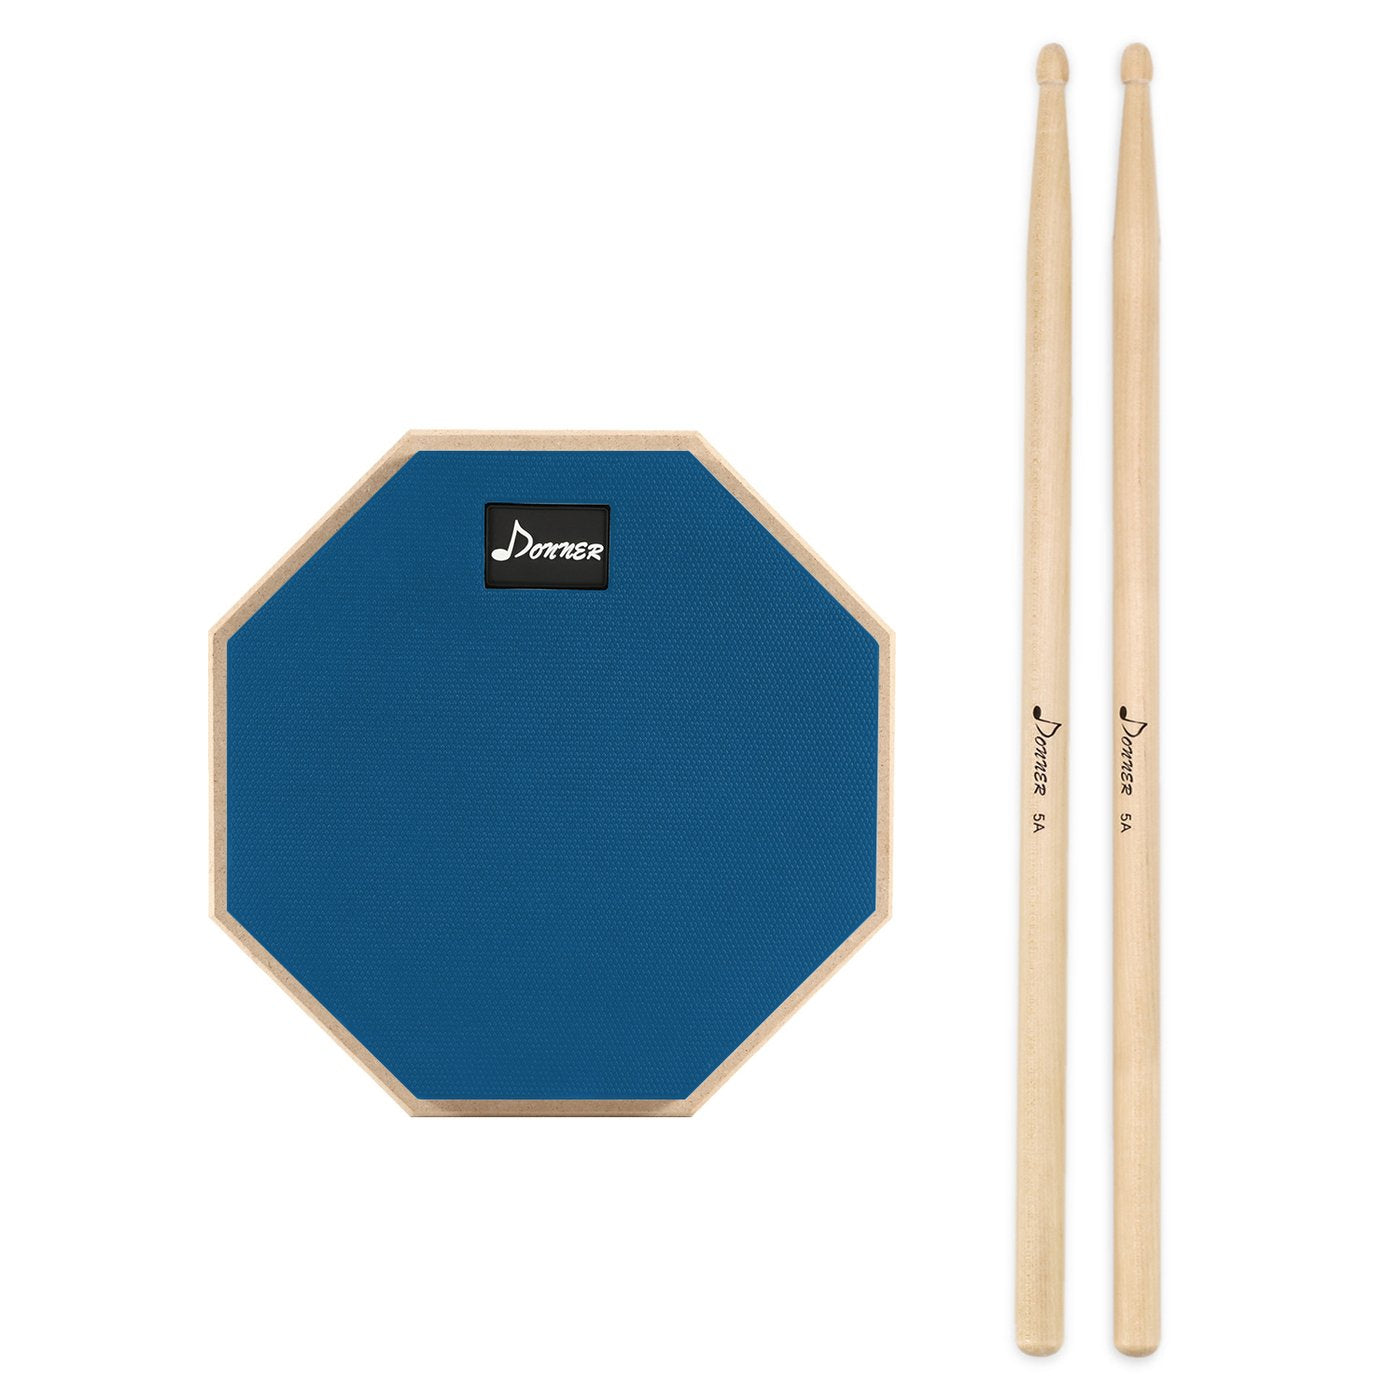 Blue Donner 8 Inches Drum Practice Pad With Drum Sticks